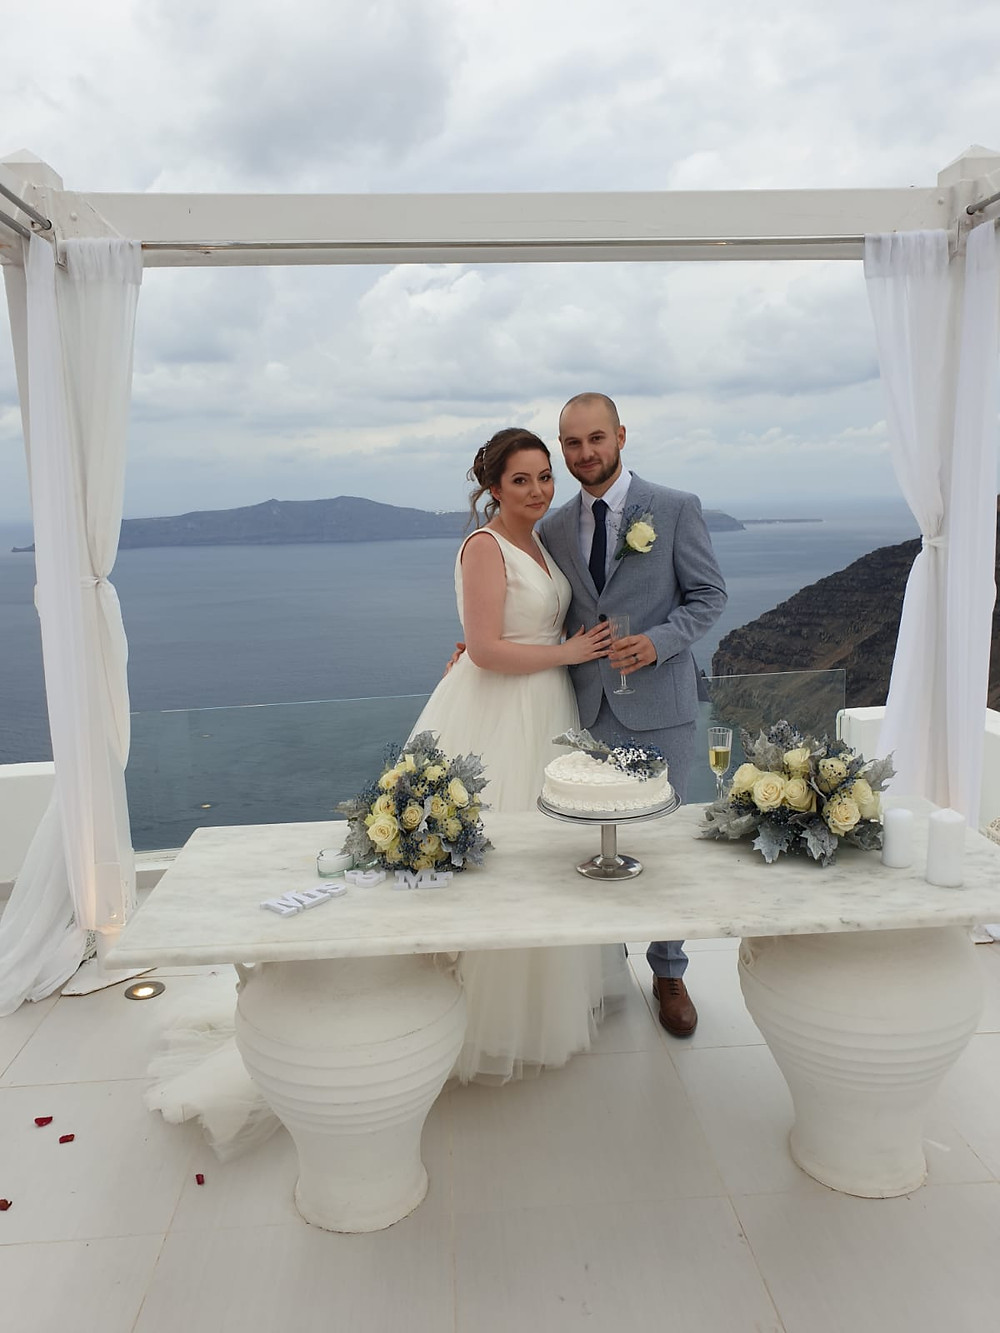 bride and groom on wedding day in santorini